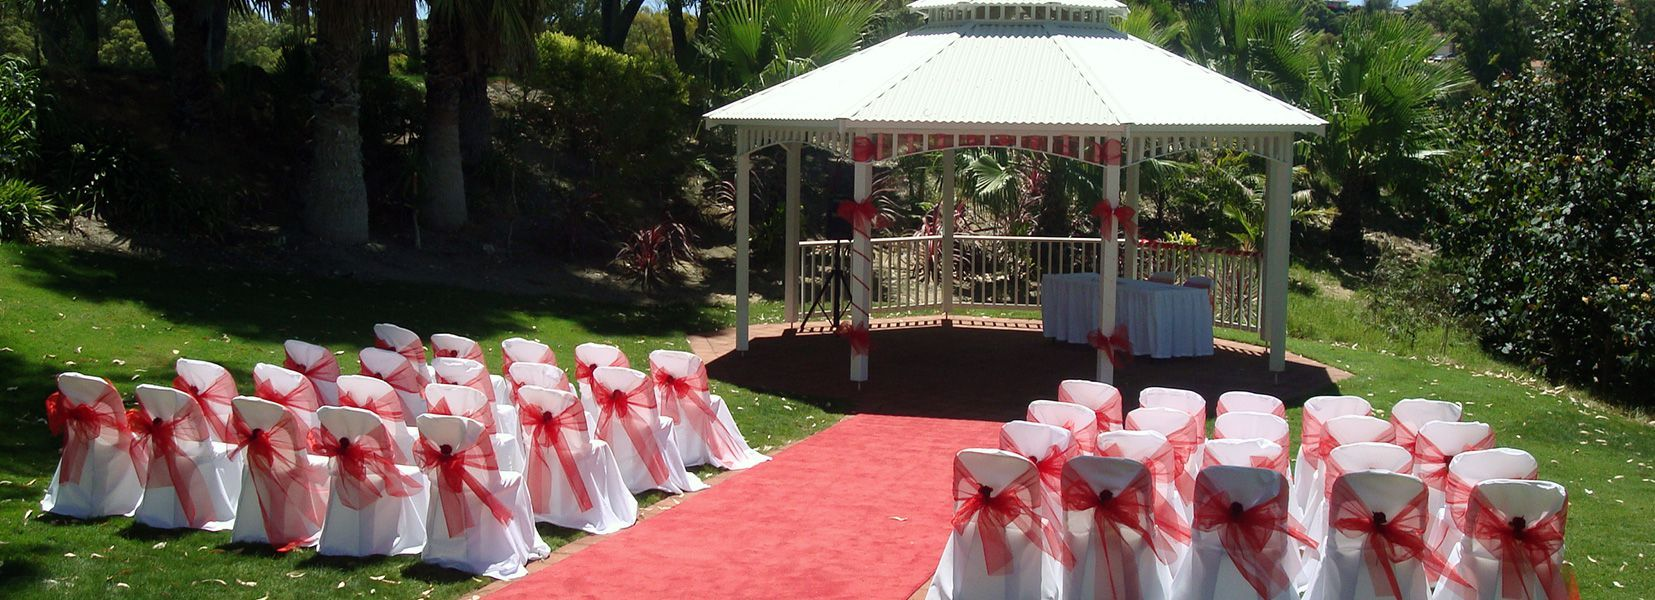 The beautiful Country Club Bushland wedding ceremony location at Joondalup  Resort in Perth is a perfect 8694244e5e00